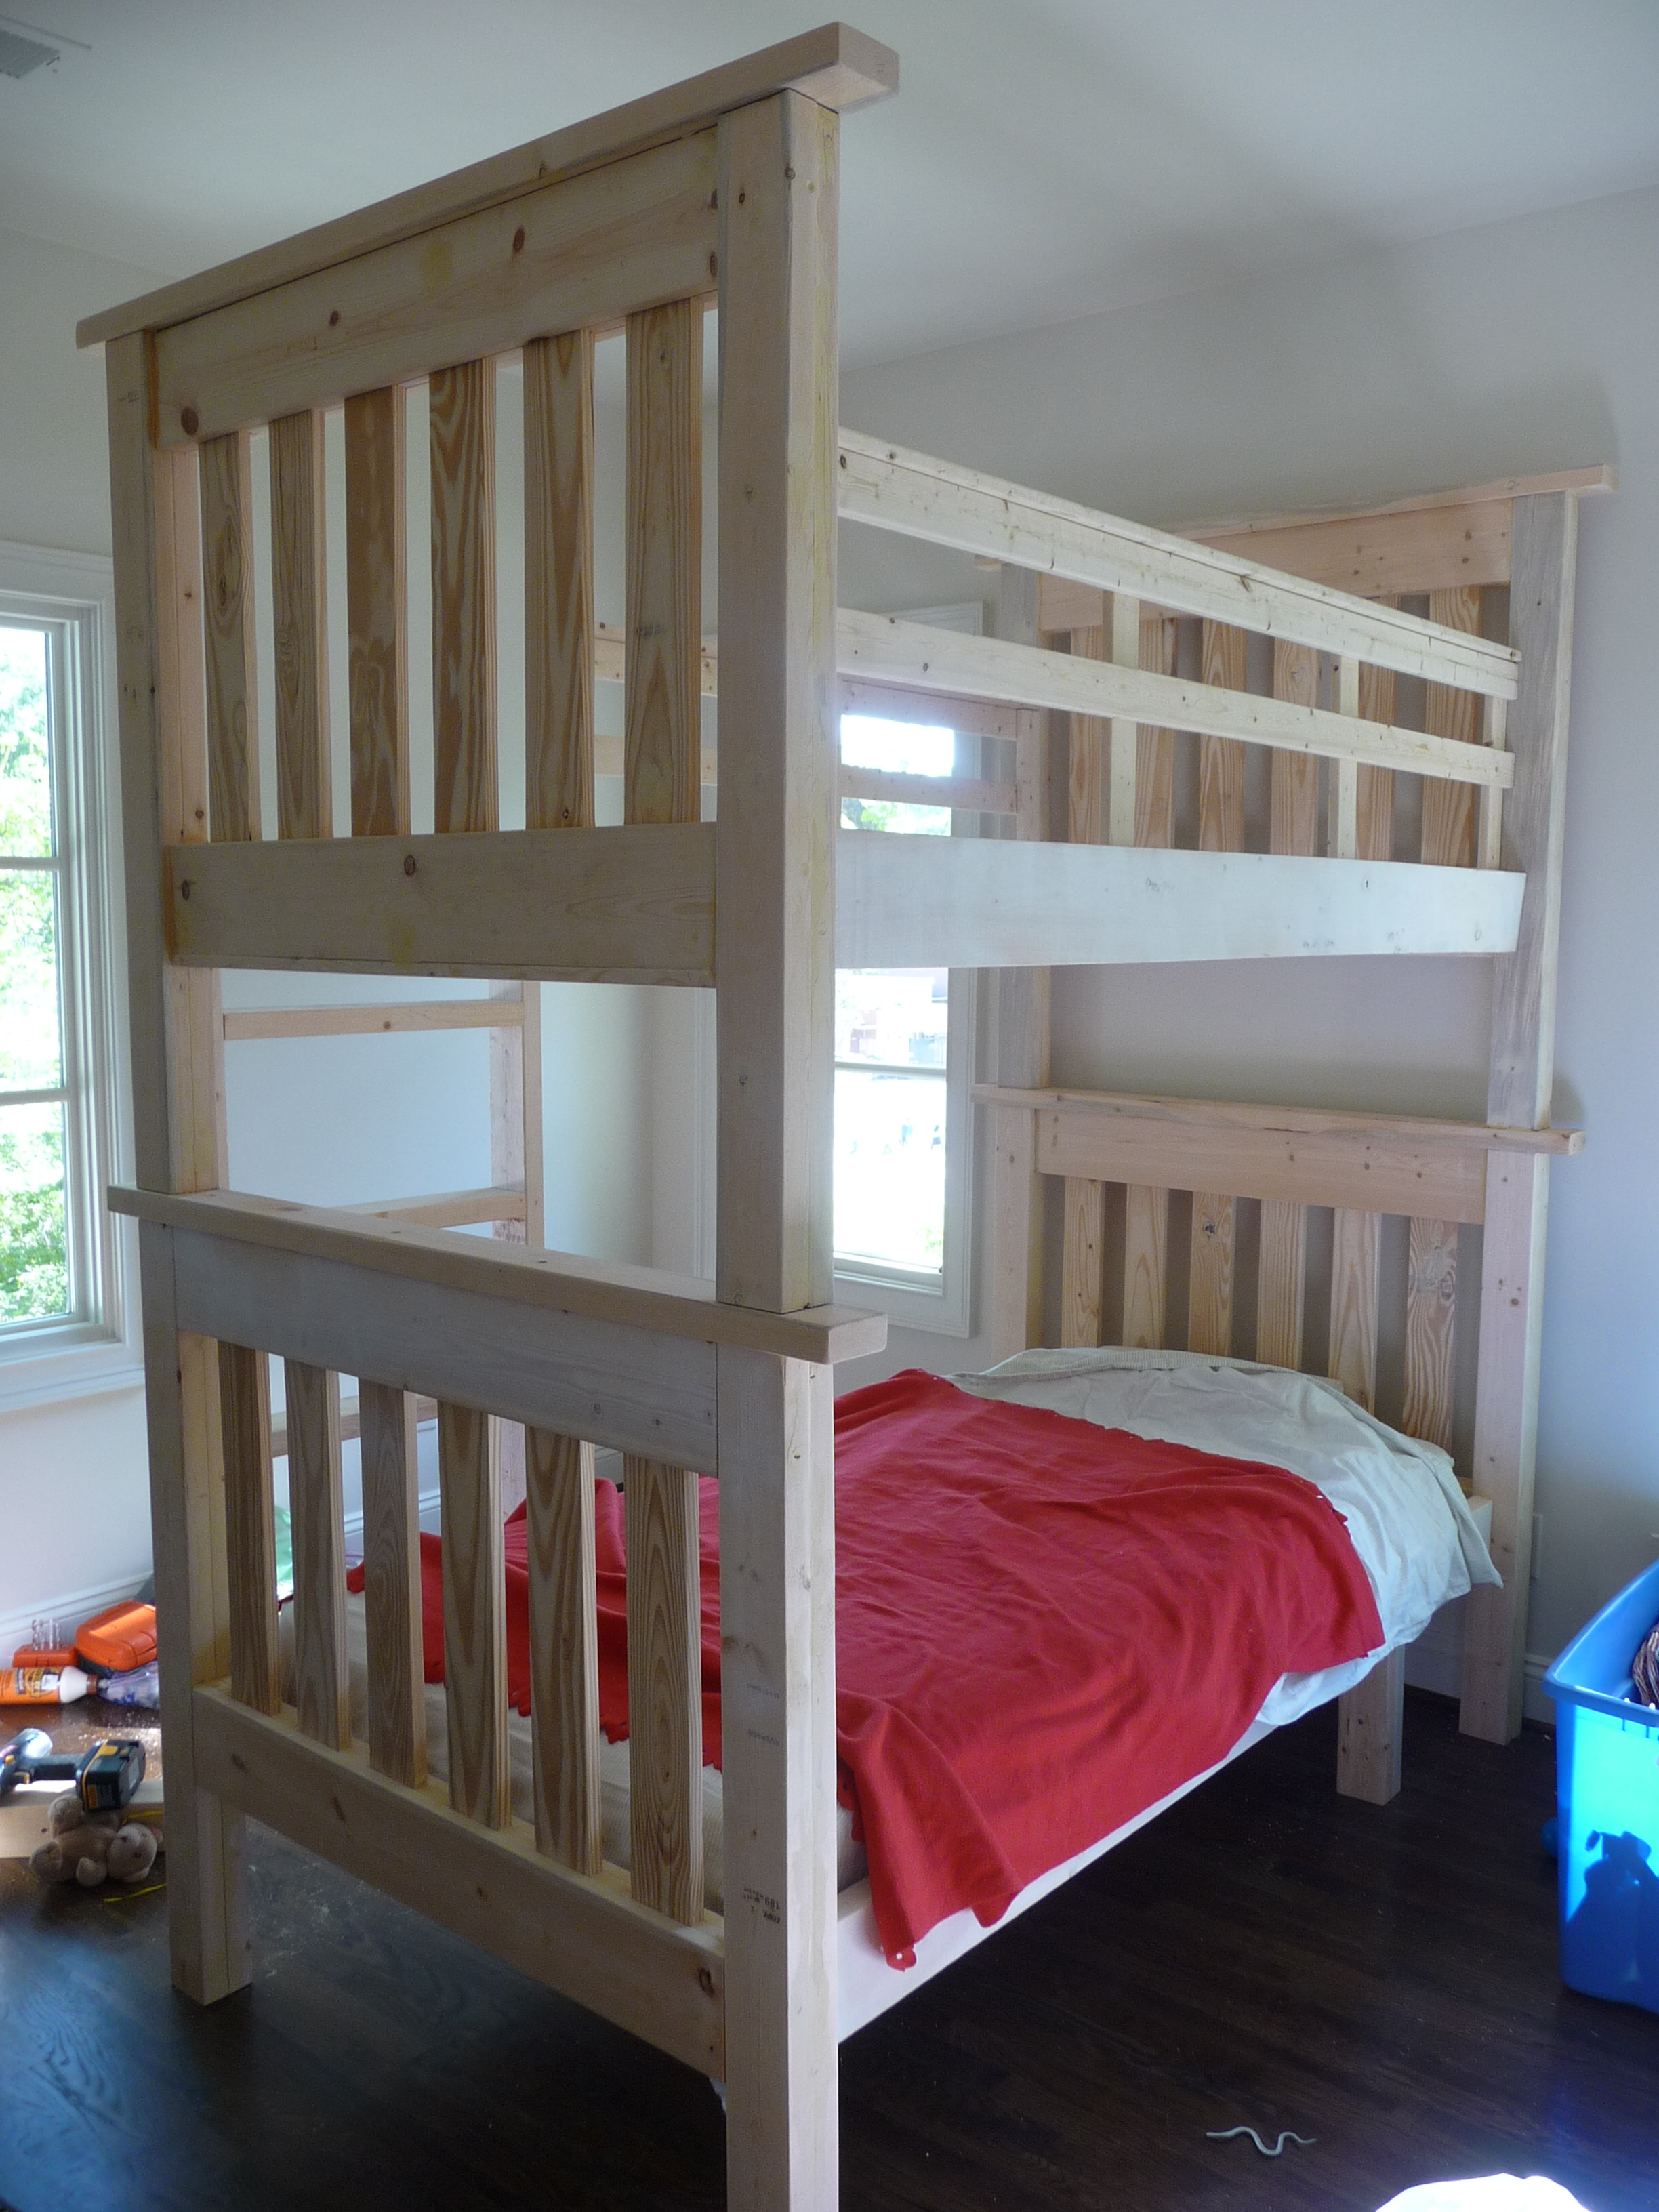 Simple Bunk Beds My First Ana Project Ana White